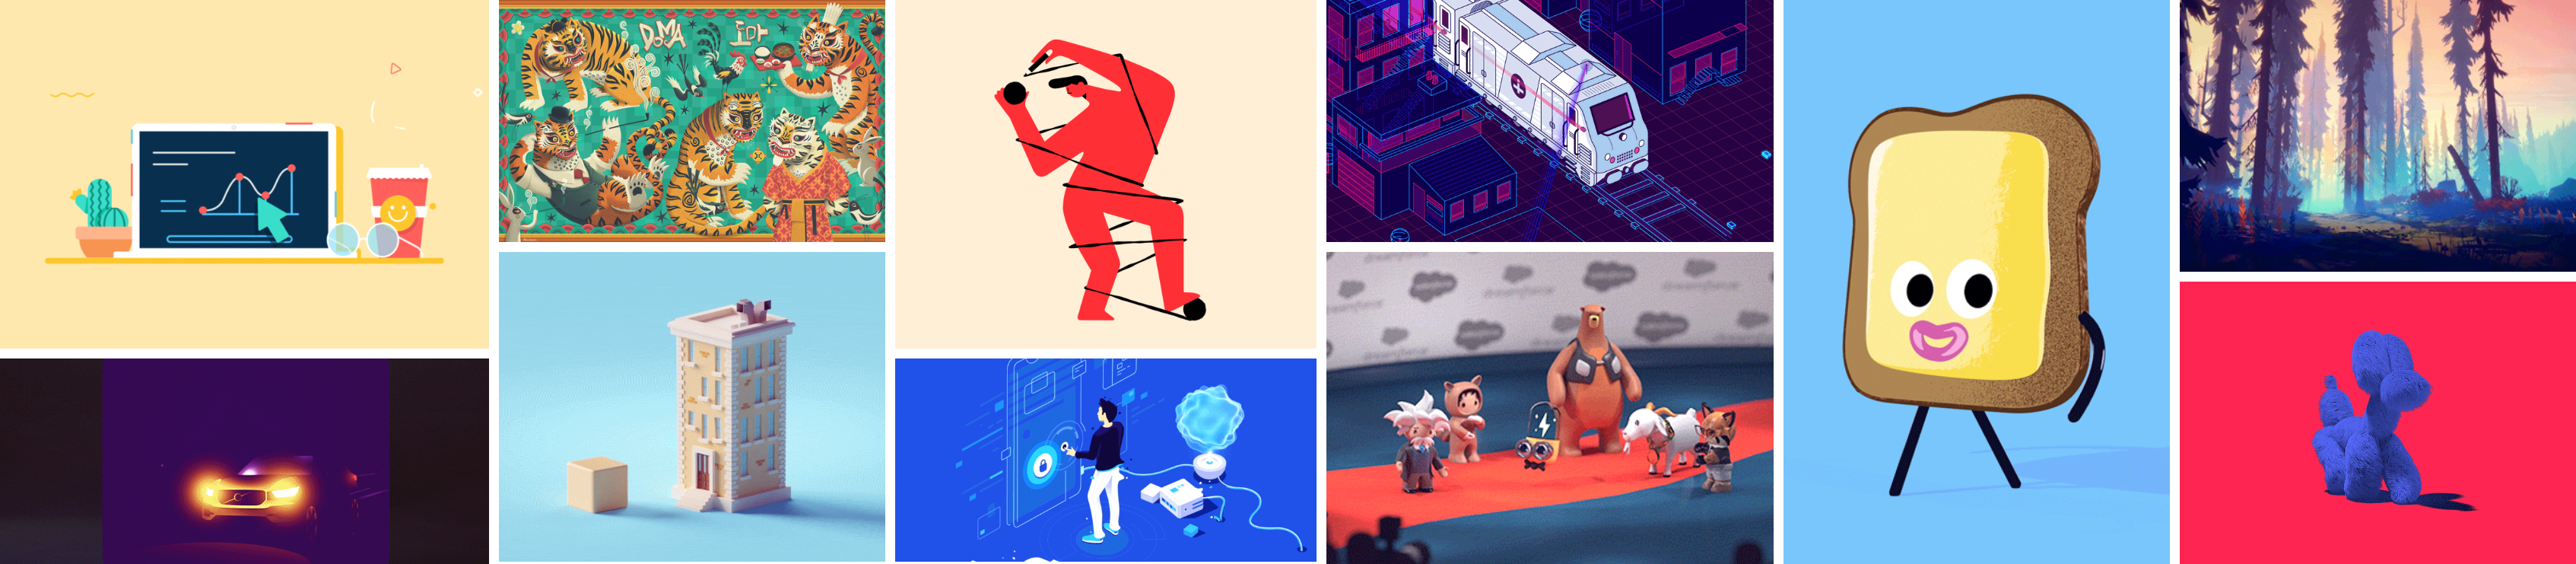 Motion Graphic Inspirations – Week 13